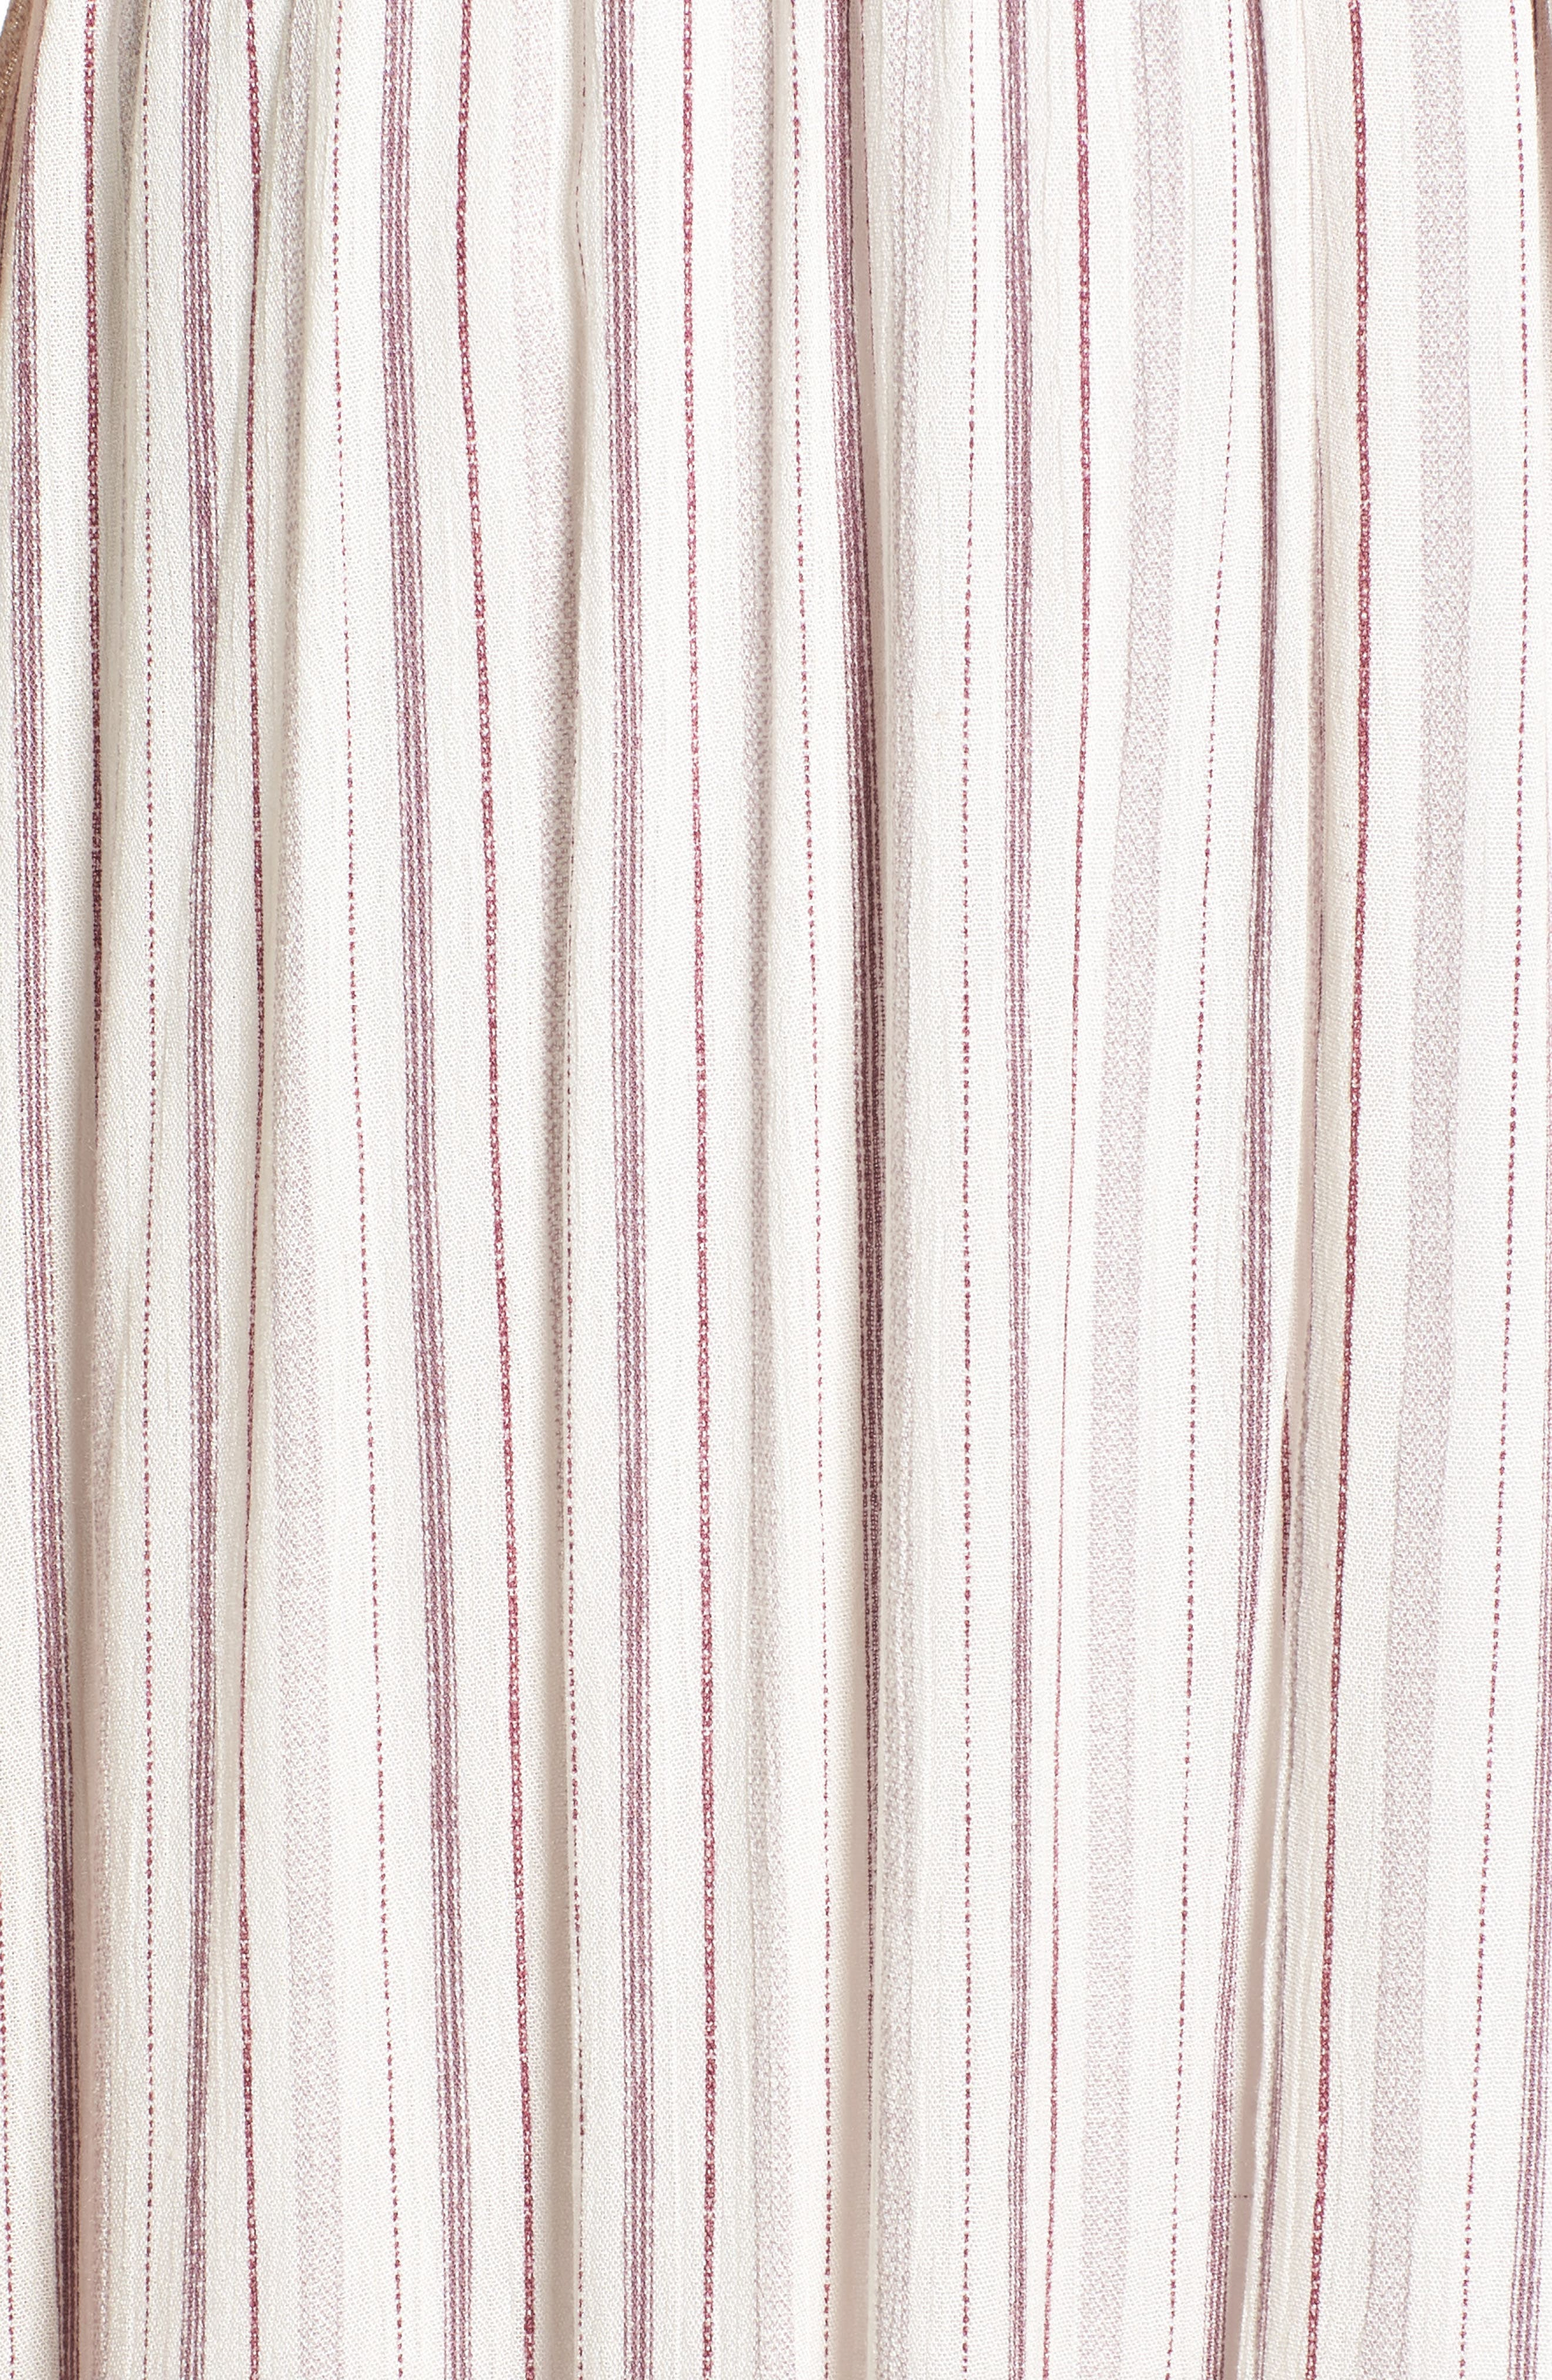 Daydreamer Stripe Maxi Dress,                             Alternate thumbnail 5, color,                             900